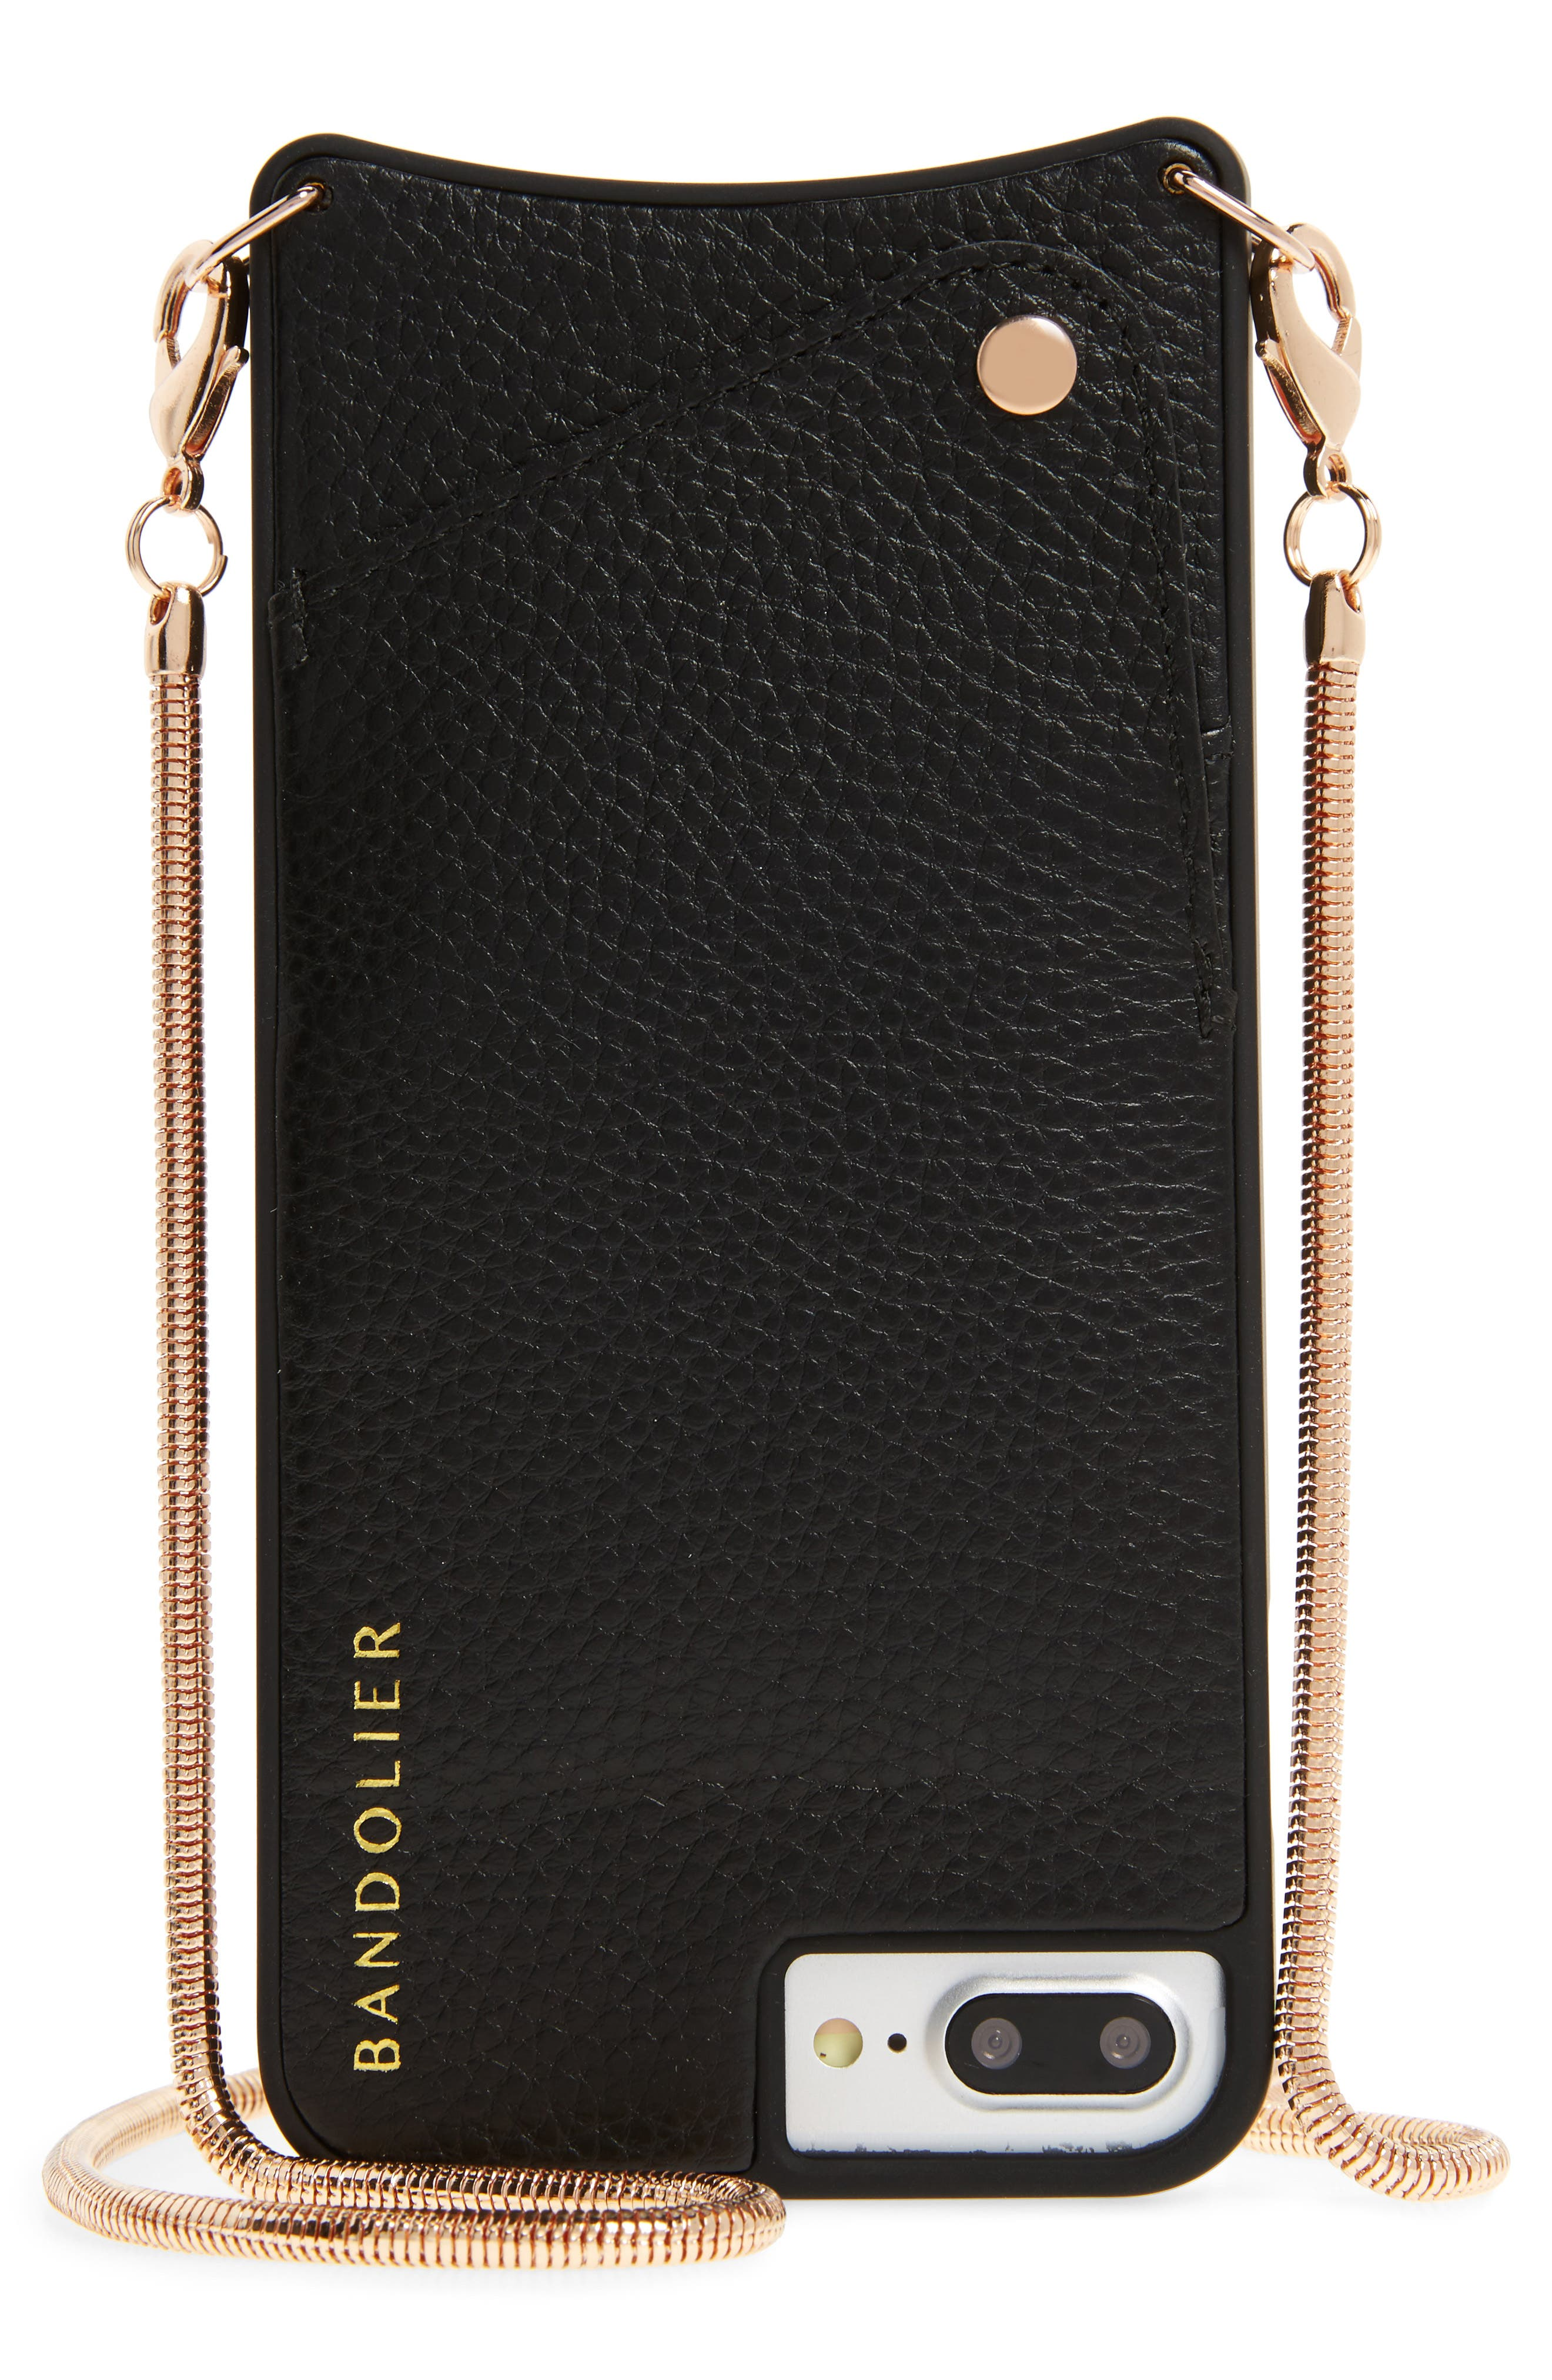 Bandolier Belinda iPhone 6/6s/7/8 & 6/6s/7/8 Plus Crossbody Case